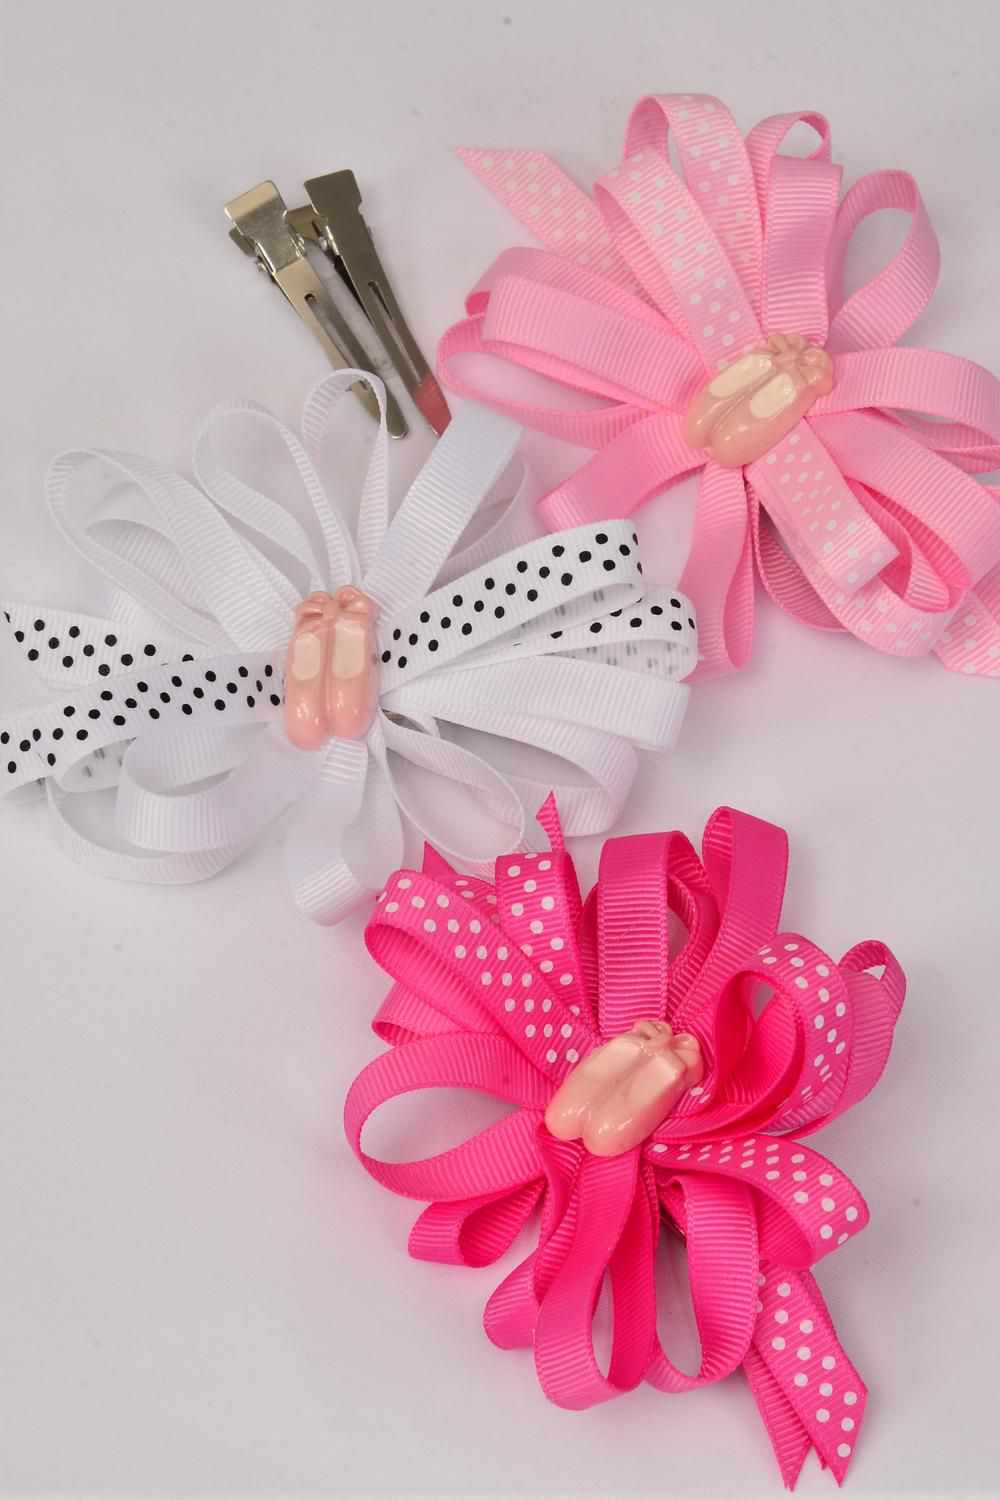 hair bow ballet shoes loop bow polka dots grosgrain bowtie. Black Bedroom Furniture Sets. Home Design Ideas